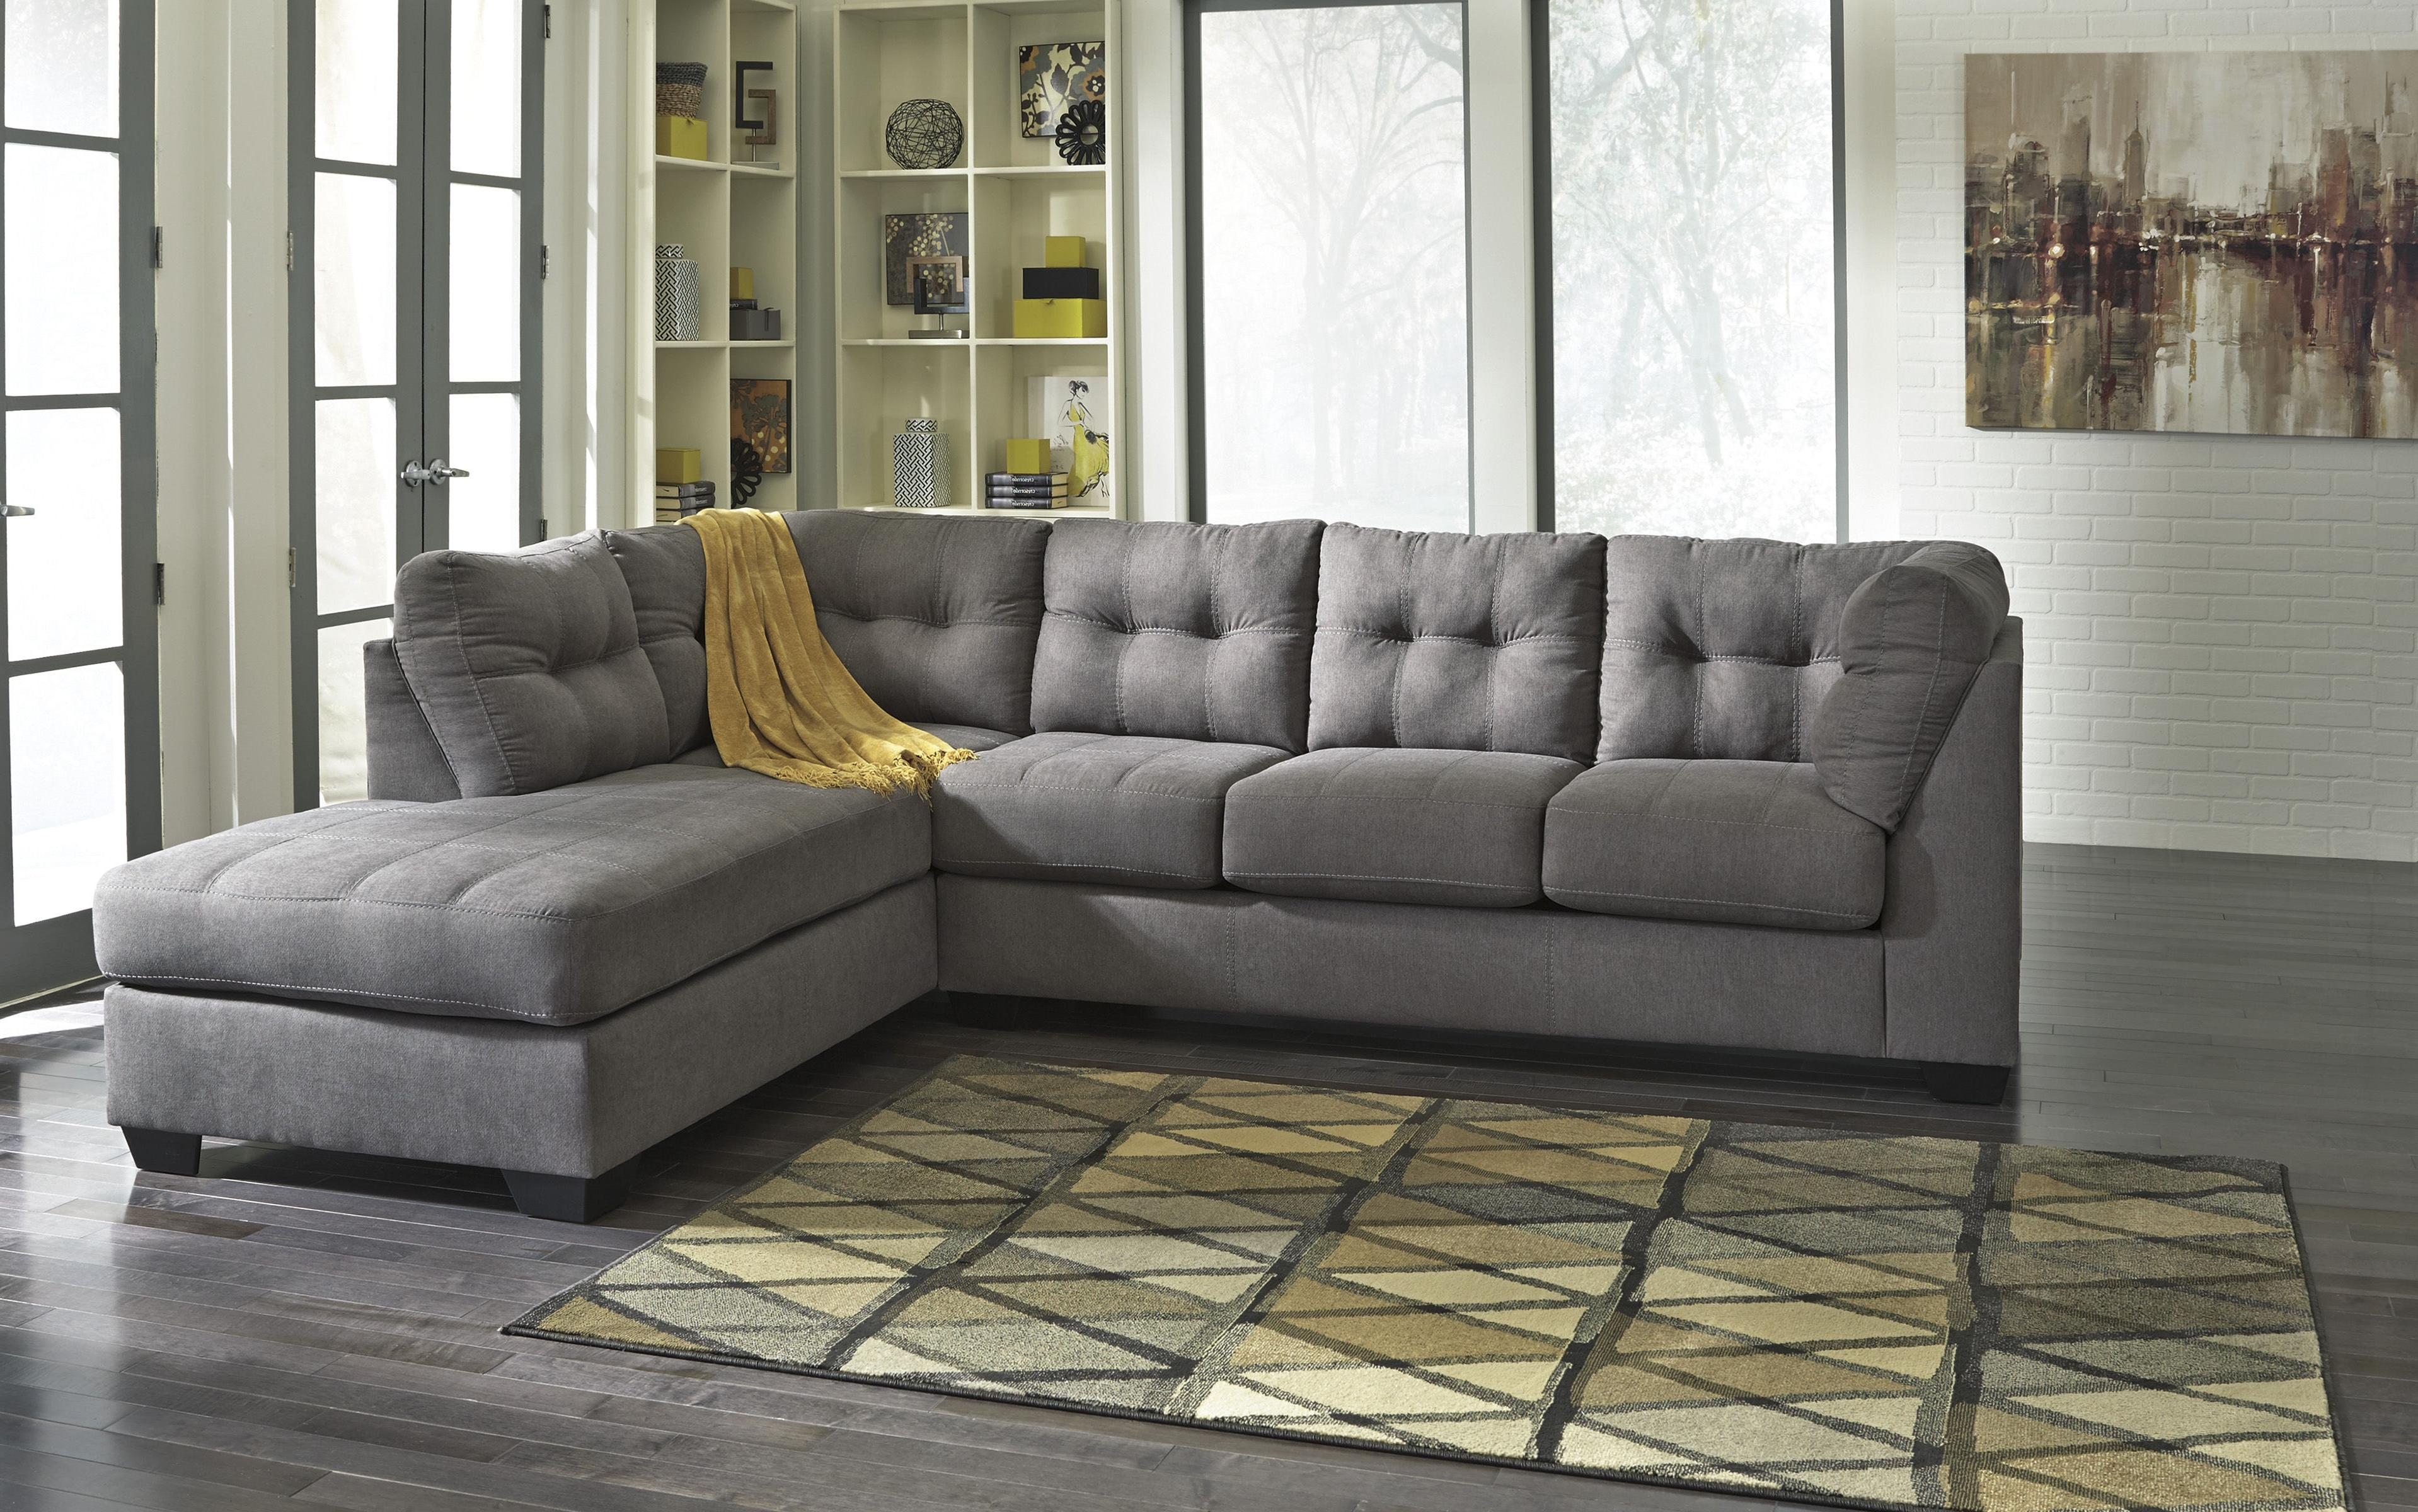 Fashionable Ashley Furniture Maier Charcoal Raf Chaise Sectional (View 10 of 15)